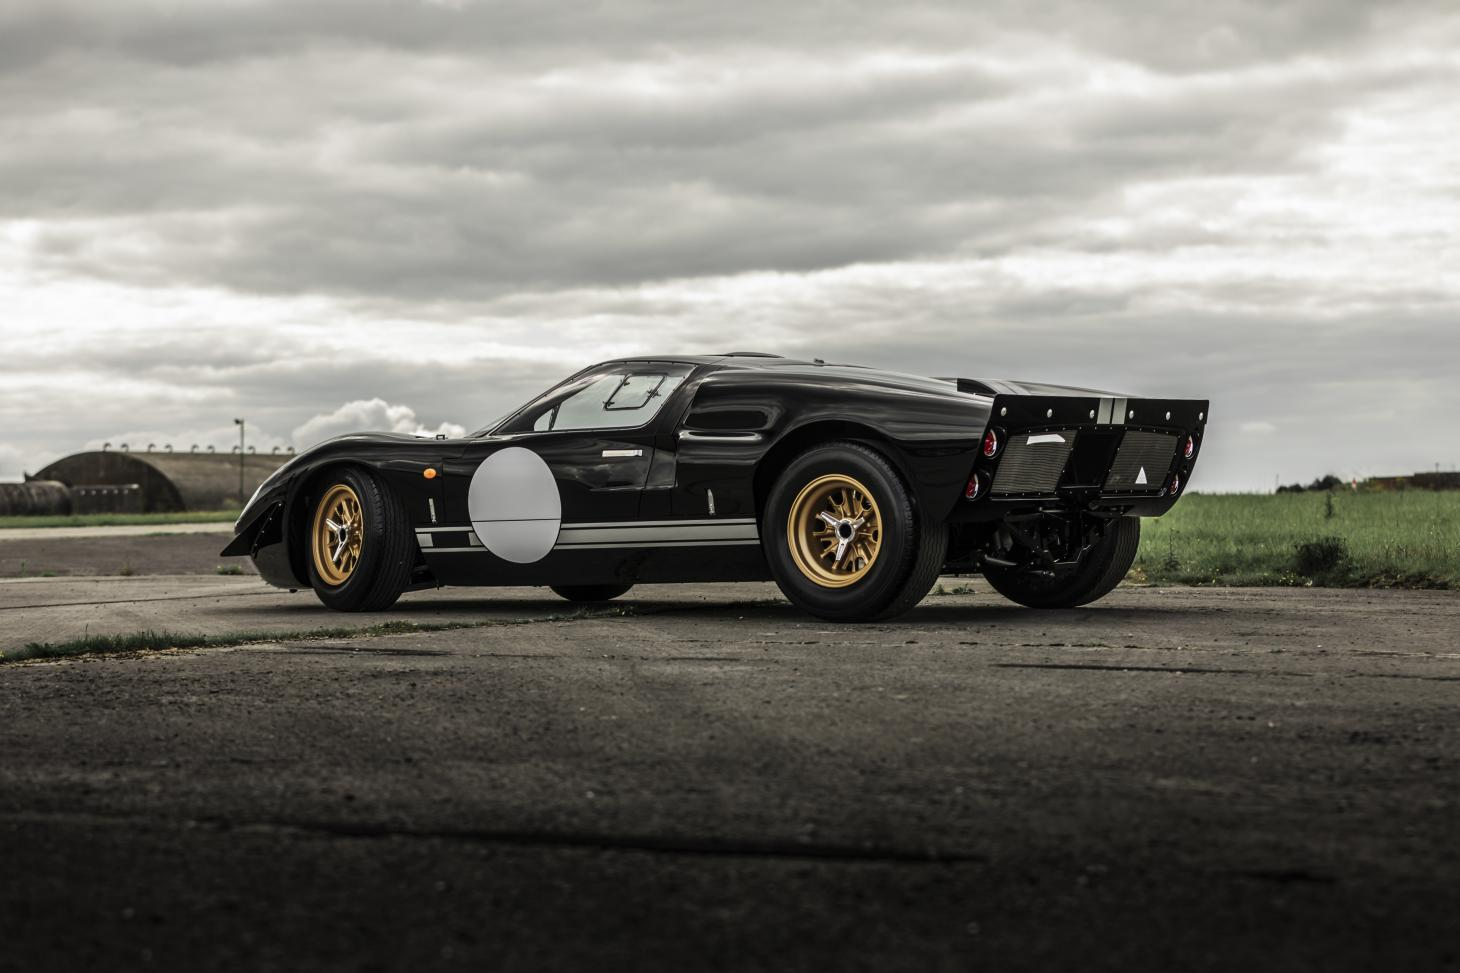 The Superformance GT40 is the next model to be electrified